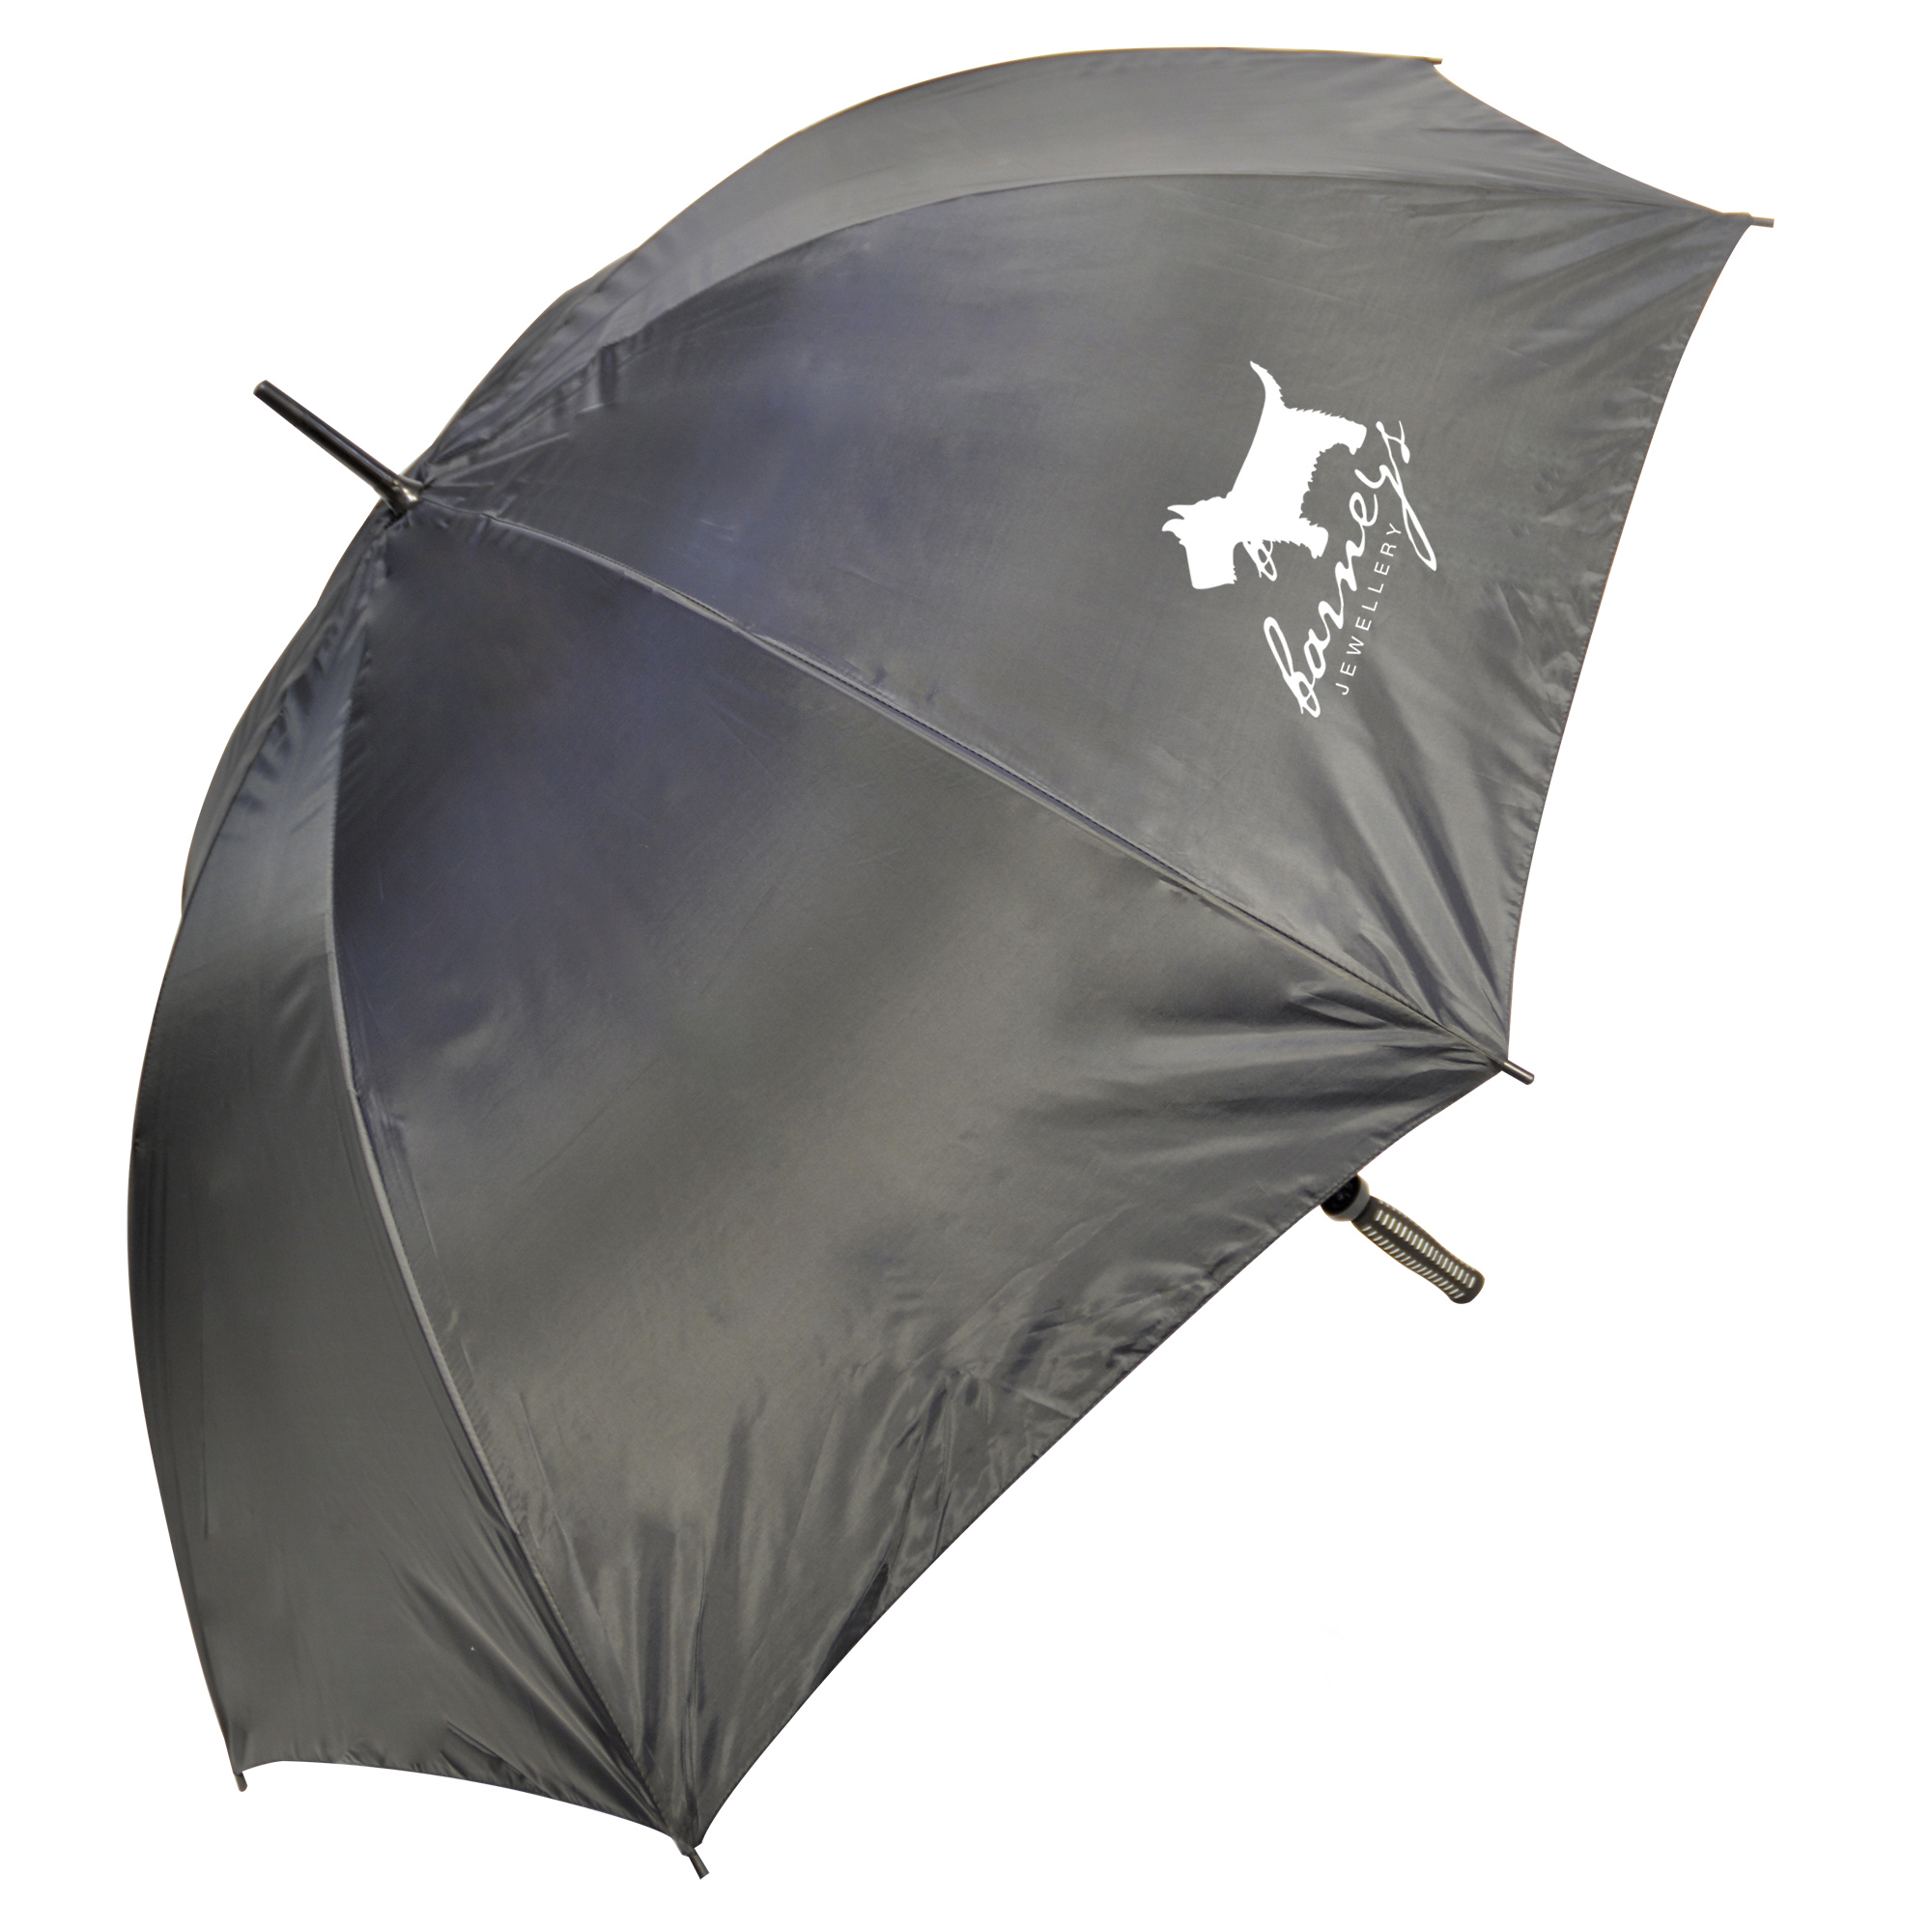 Promotional Swift 30 Inch Wind Proof Golf Umbrella